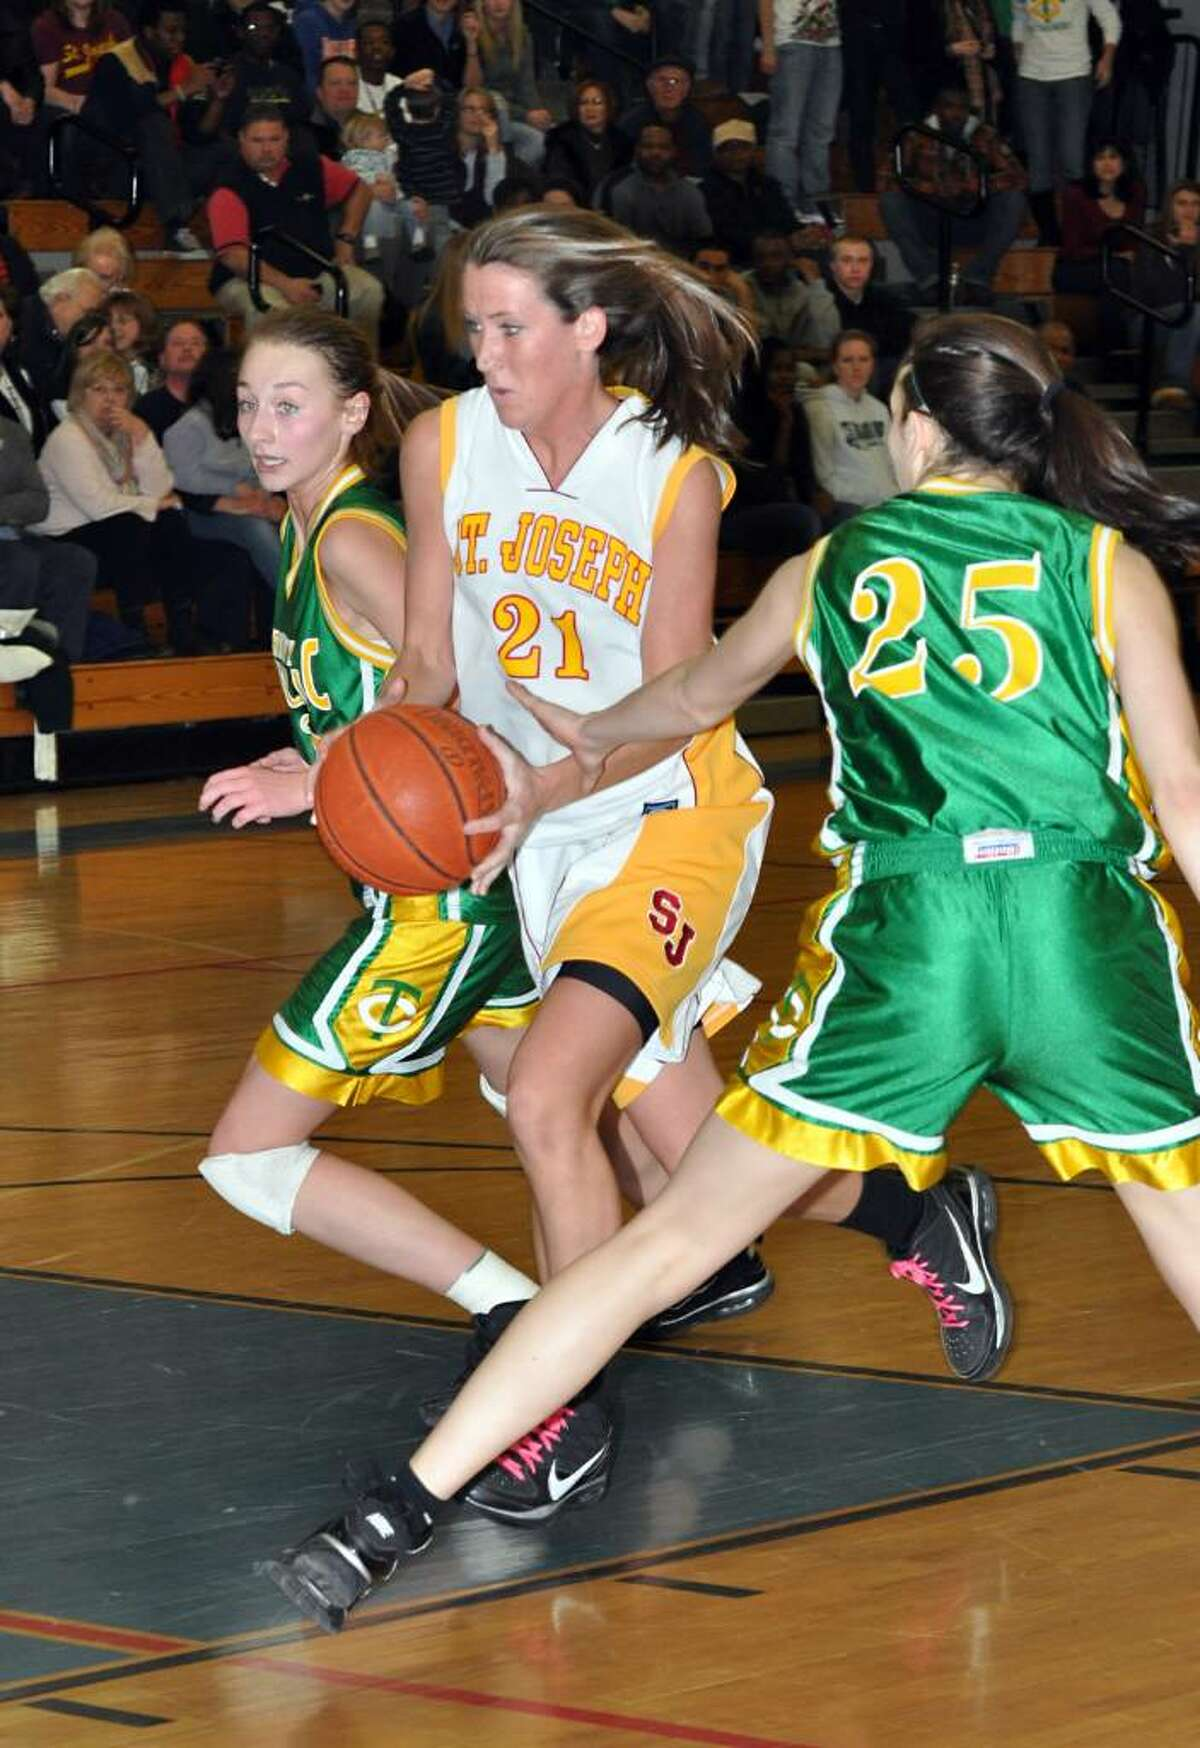 St. Joseph's Michele Gorman breaks through Trinity's defense Machkenzie Griffin and Ali Palma during the first half of the FCIAC girls basketball championship game at Fairfield Ludlowe High School on Saturday, Feb. 27, 2010.